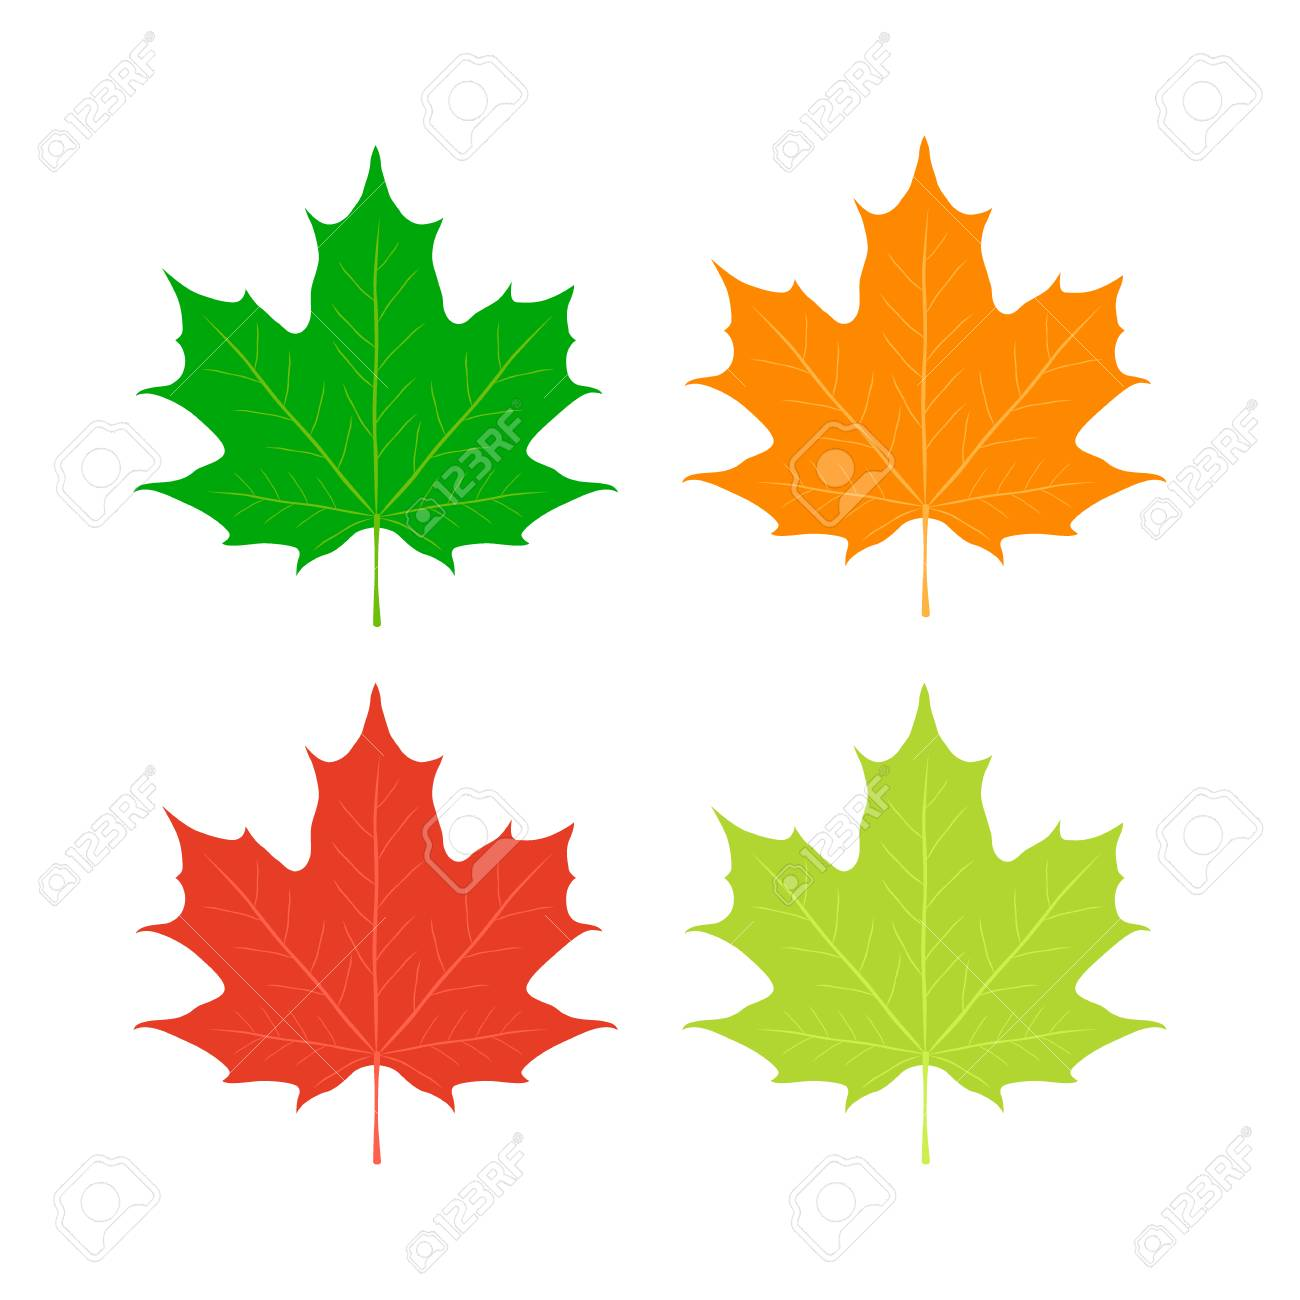 Maple Leaves Canada Symbol Red Orange Yellow Maple In Cartoon Royalty Free Cliparts Vectors And Stock Illustration Image 75817318